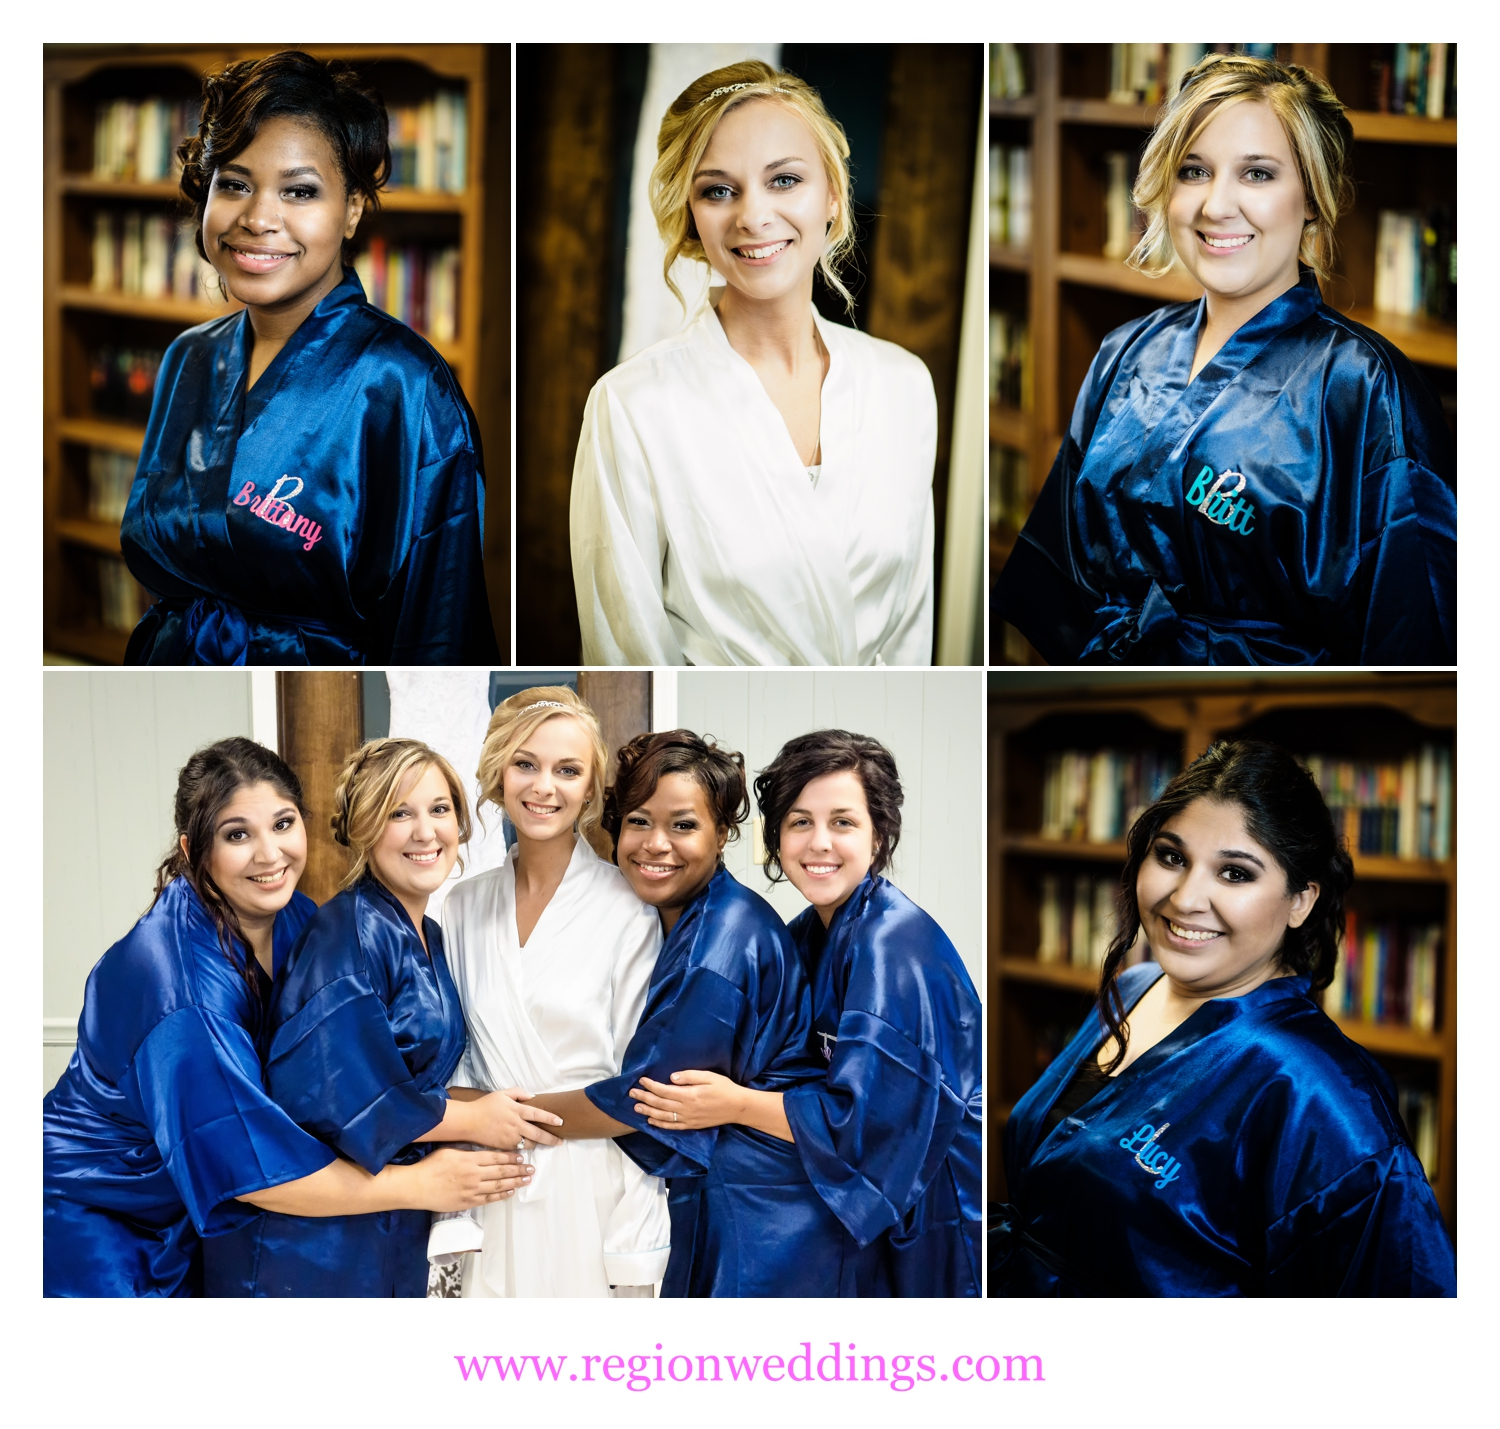 The bridesmaids in their blue robes during wedding day prep.